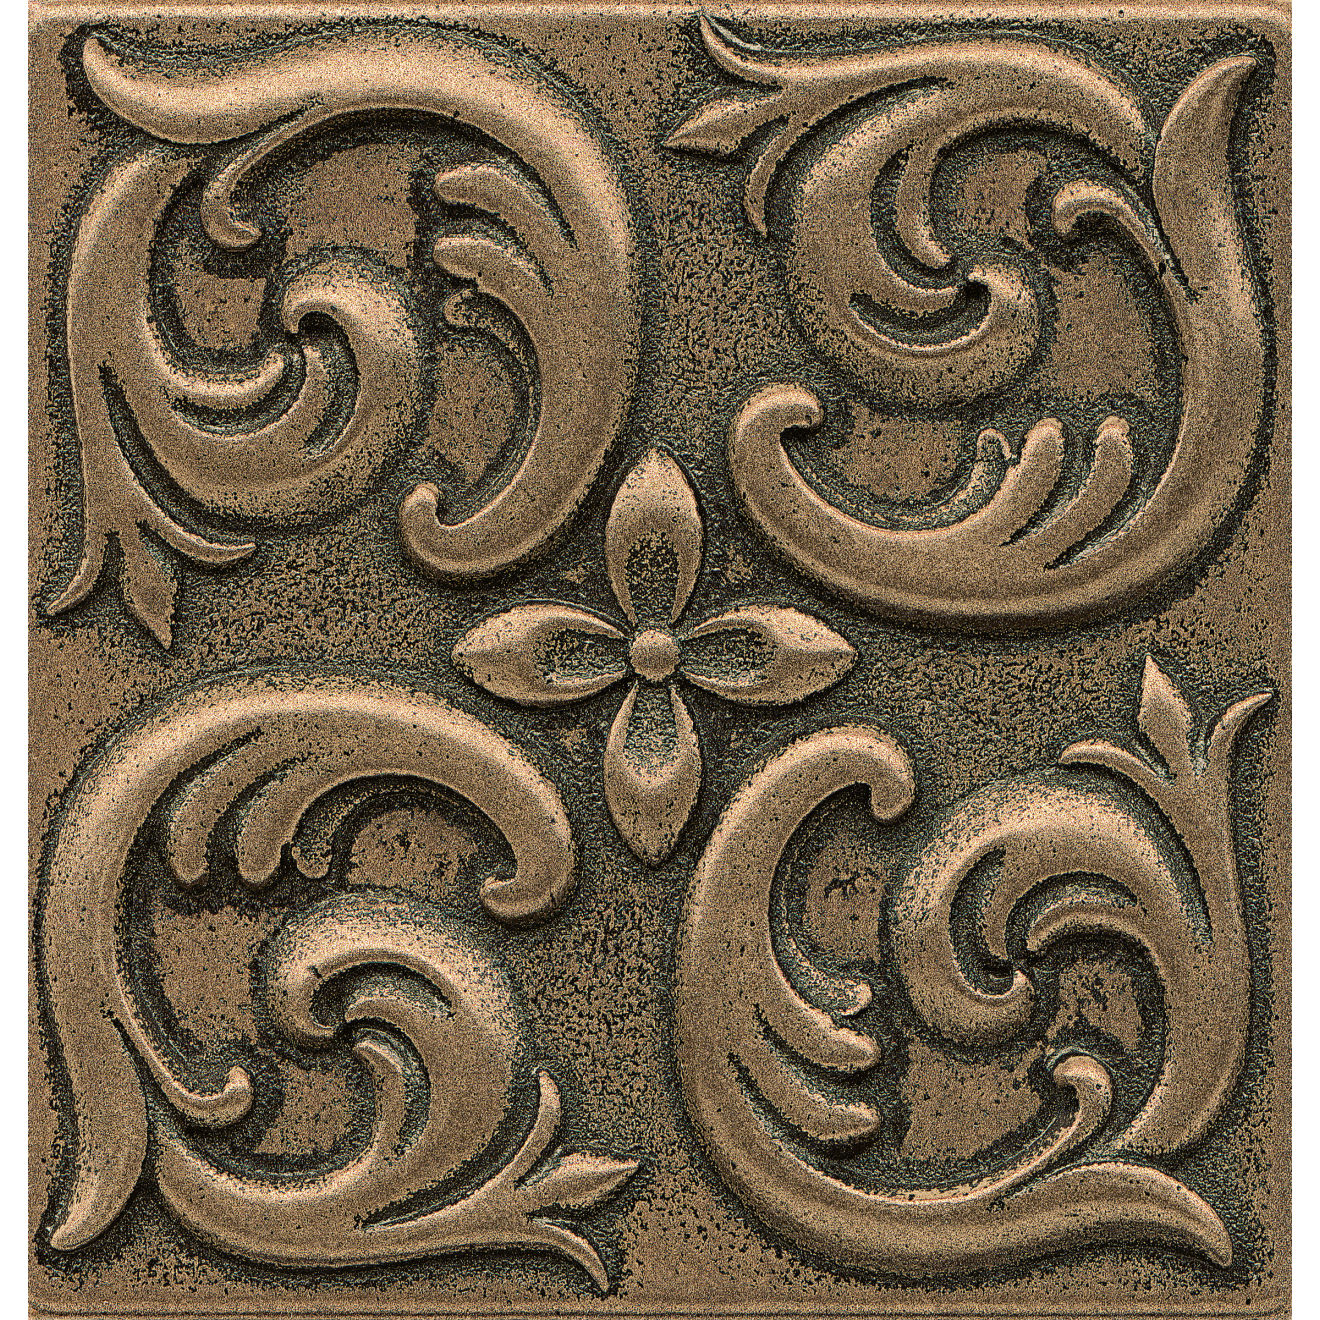 """Ambiance 4"""" x 4"""" Wave Metal Resin Insert in Bronze"""